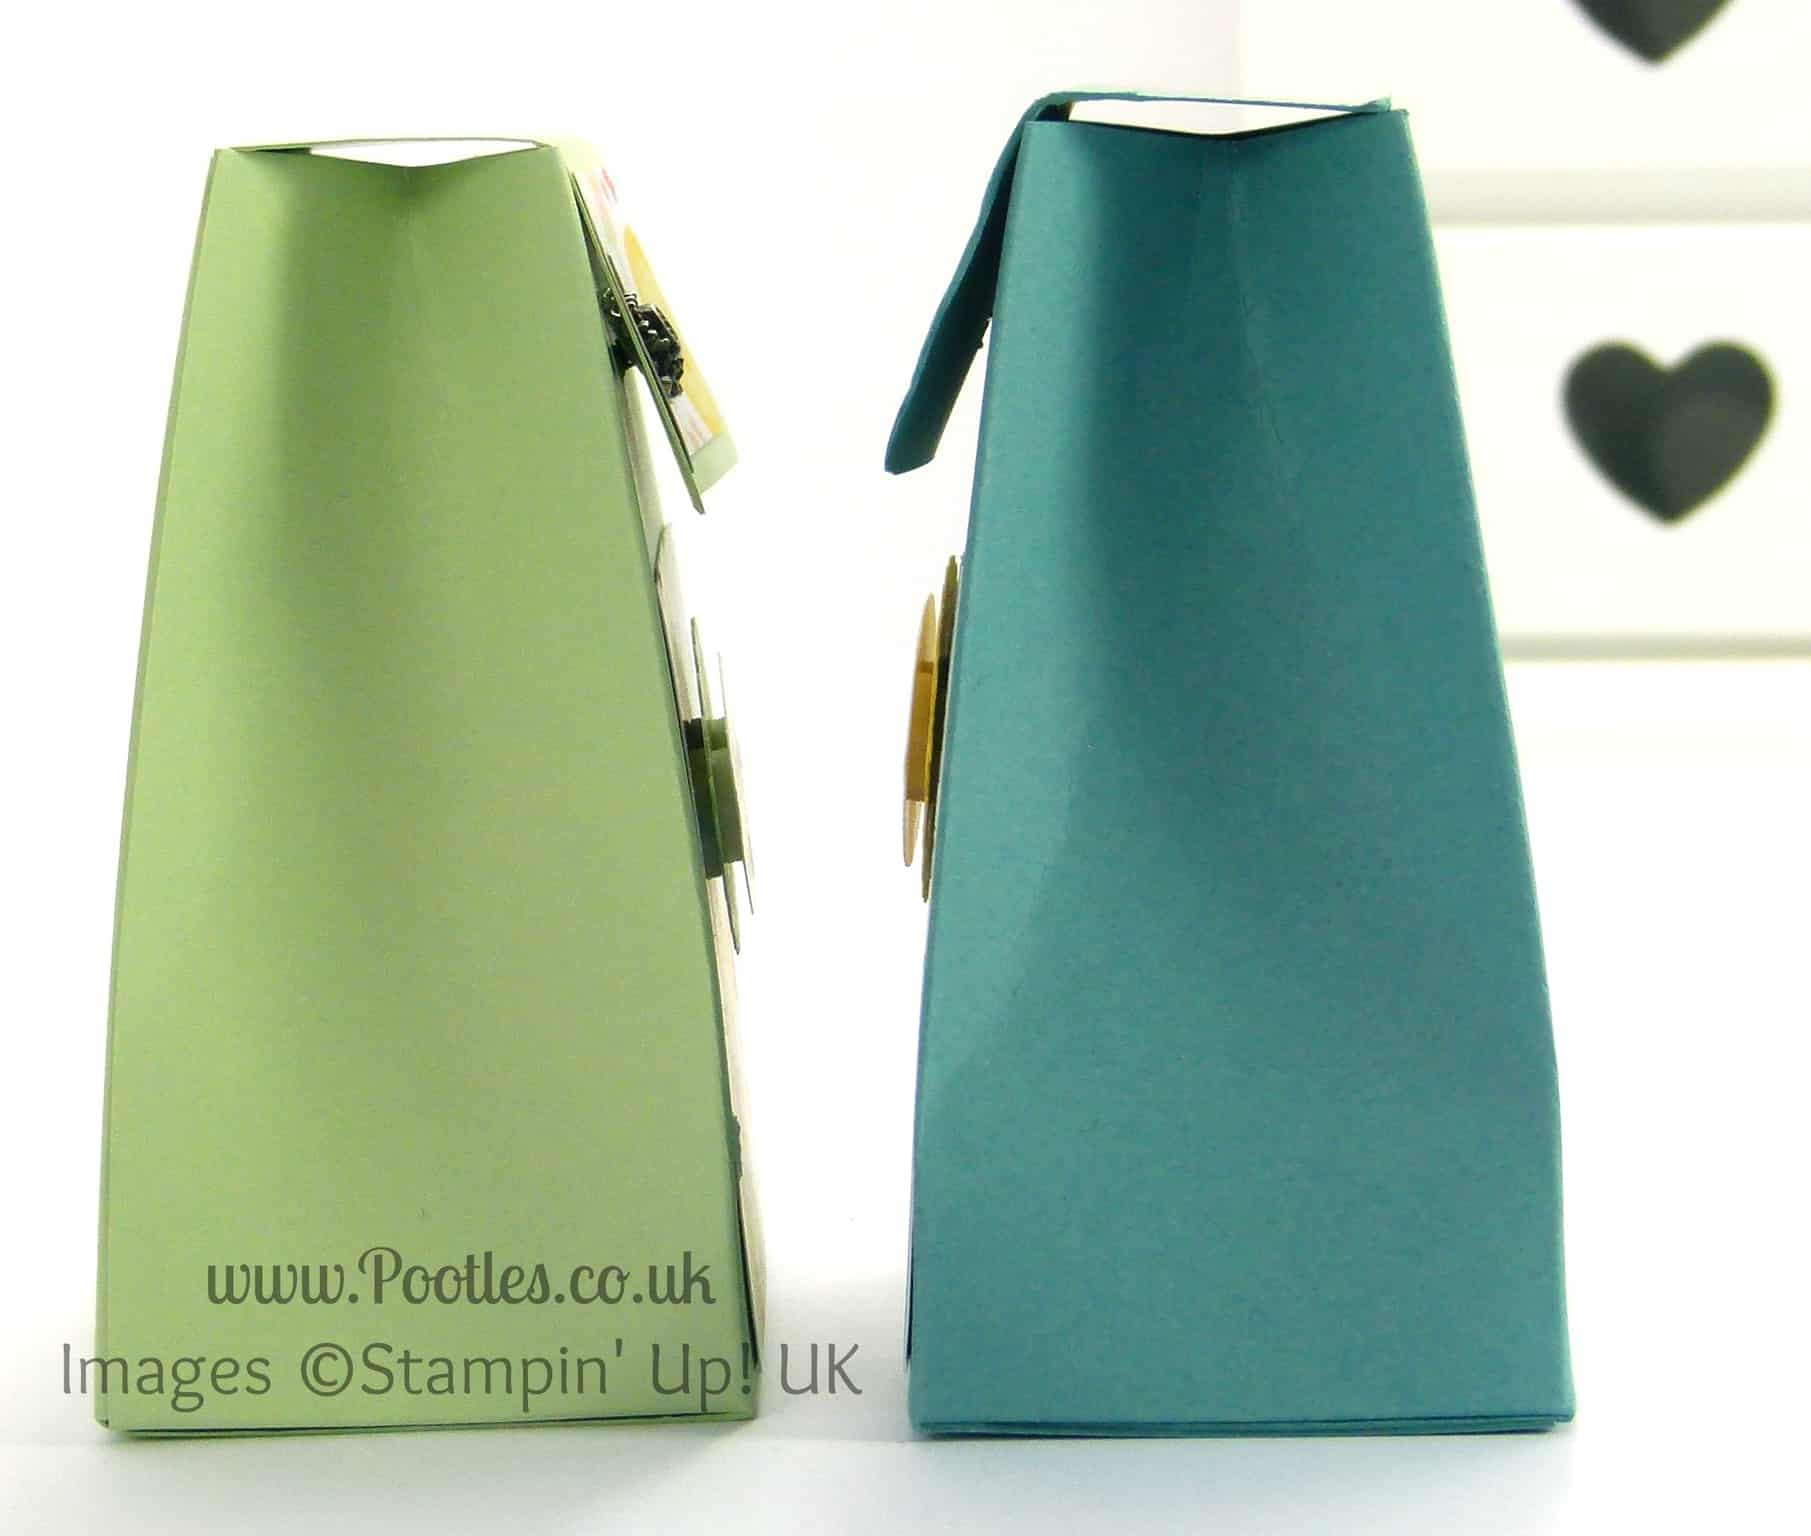 Stampin' Up! UK Demonstrator Pootles - Pinch Close Flat Topped Box Tutorial Side Profile